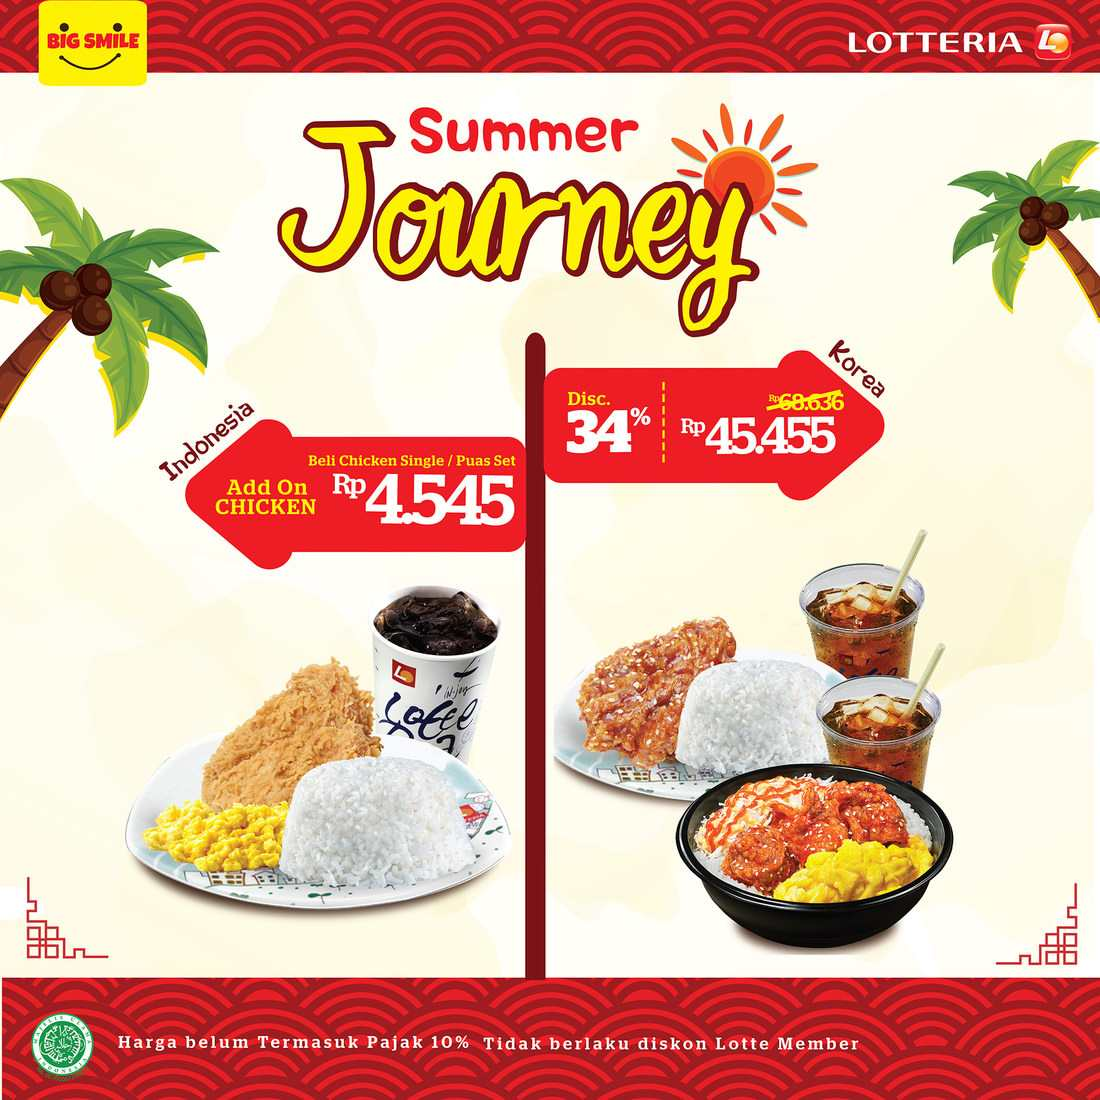 LOTTERIA Promo Summer Journey